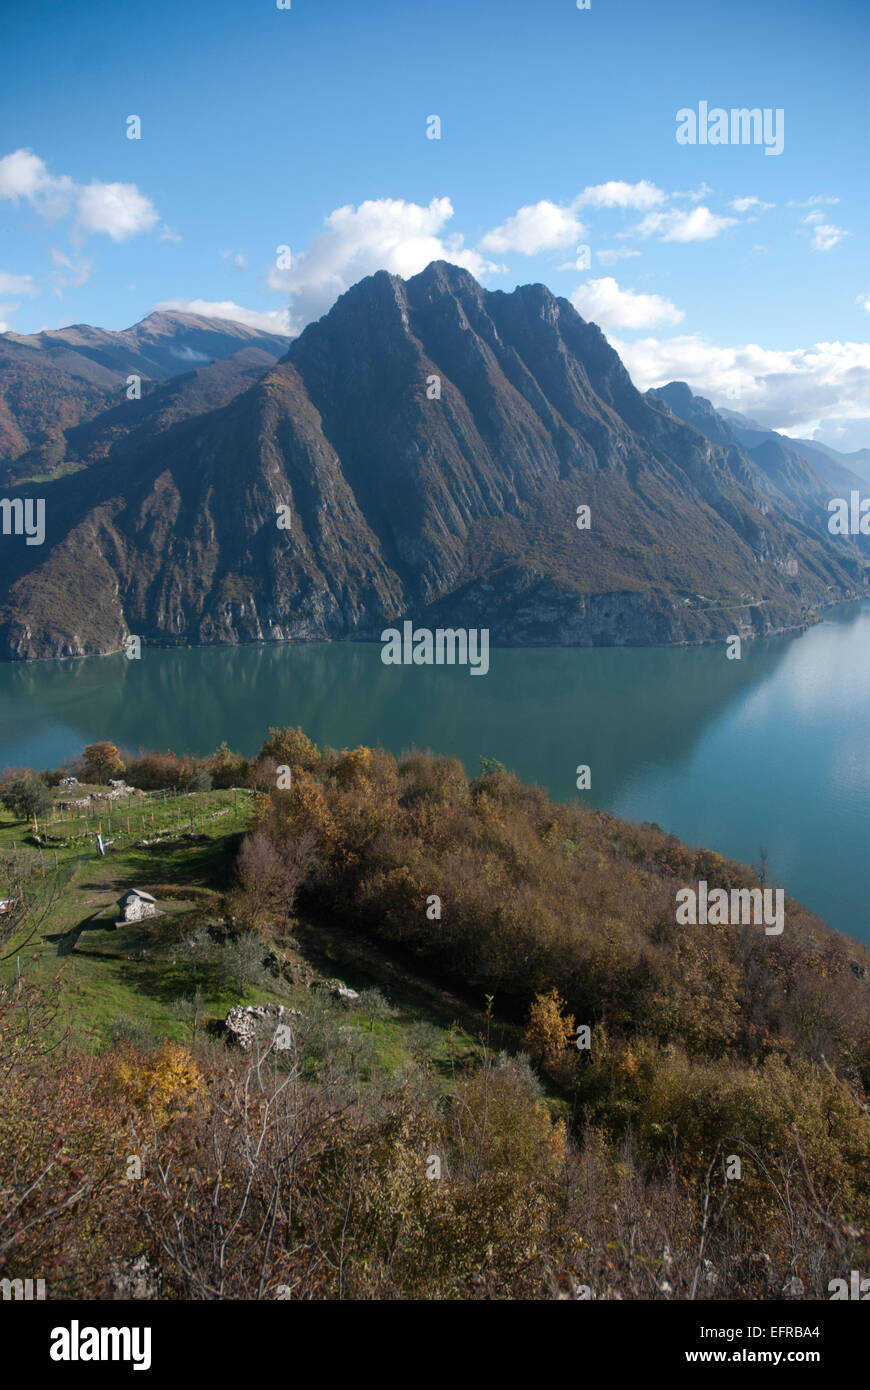 Mountain range at Lake Iseo - Stock Image